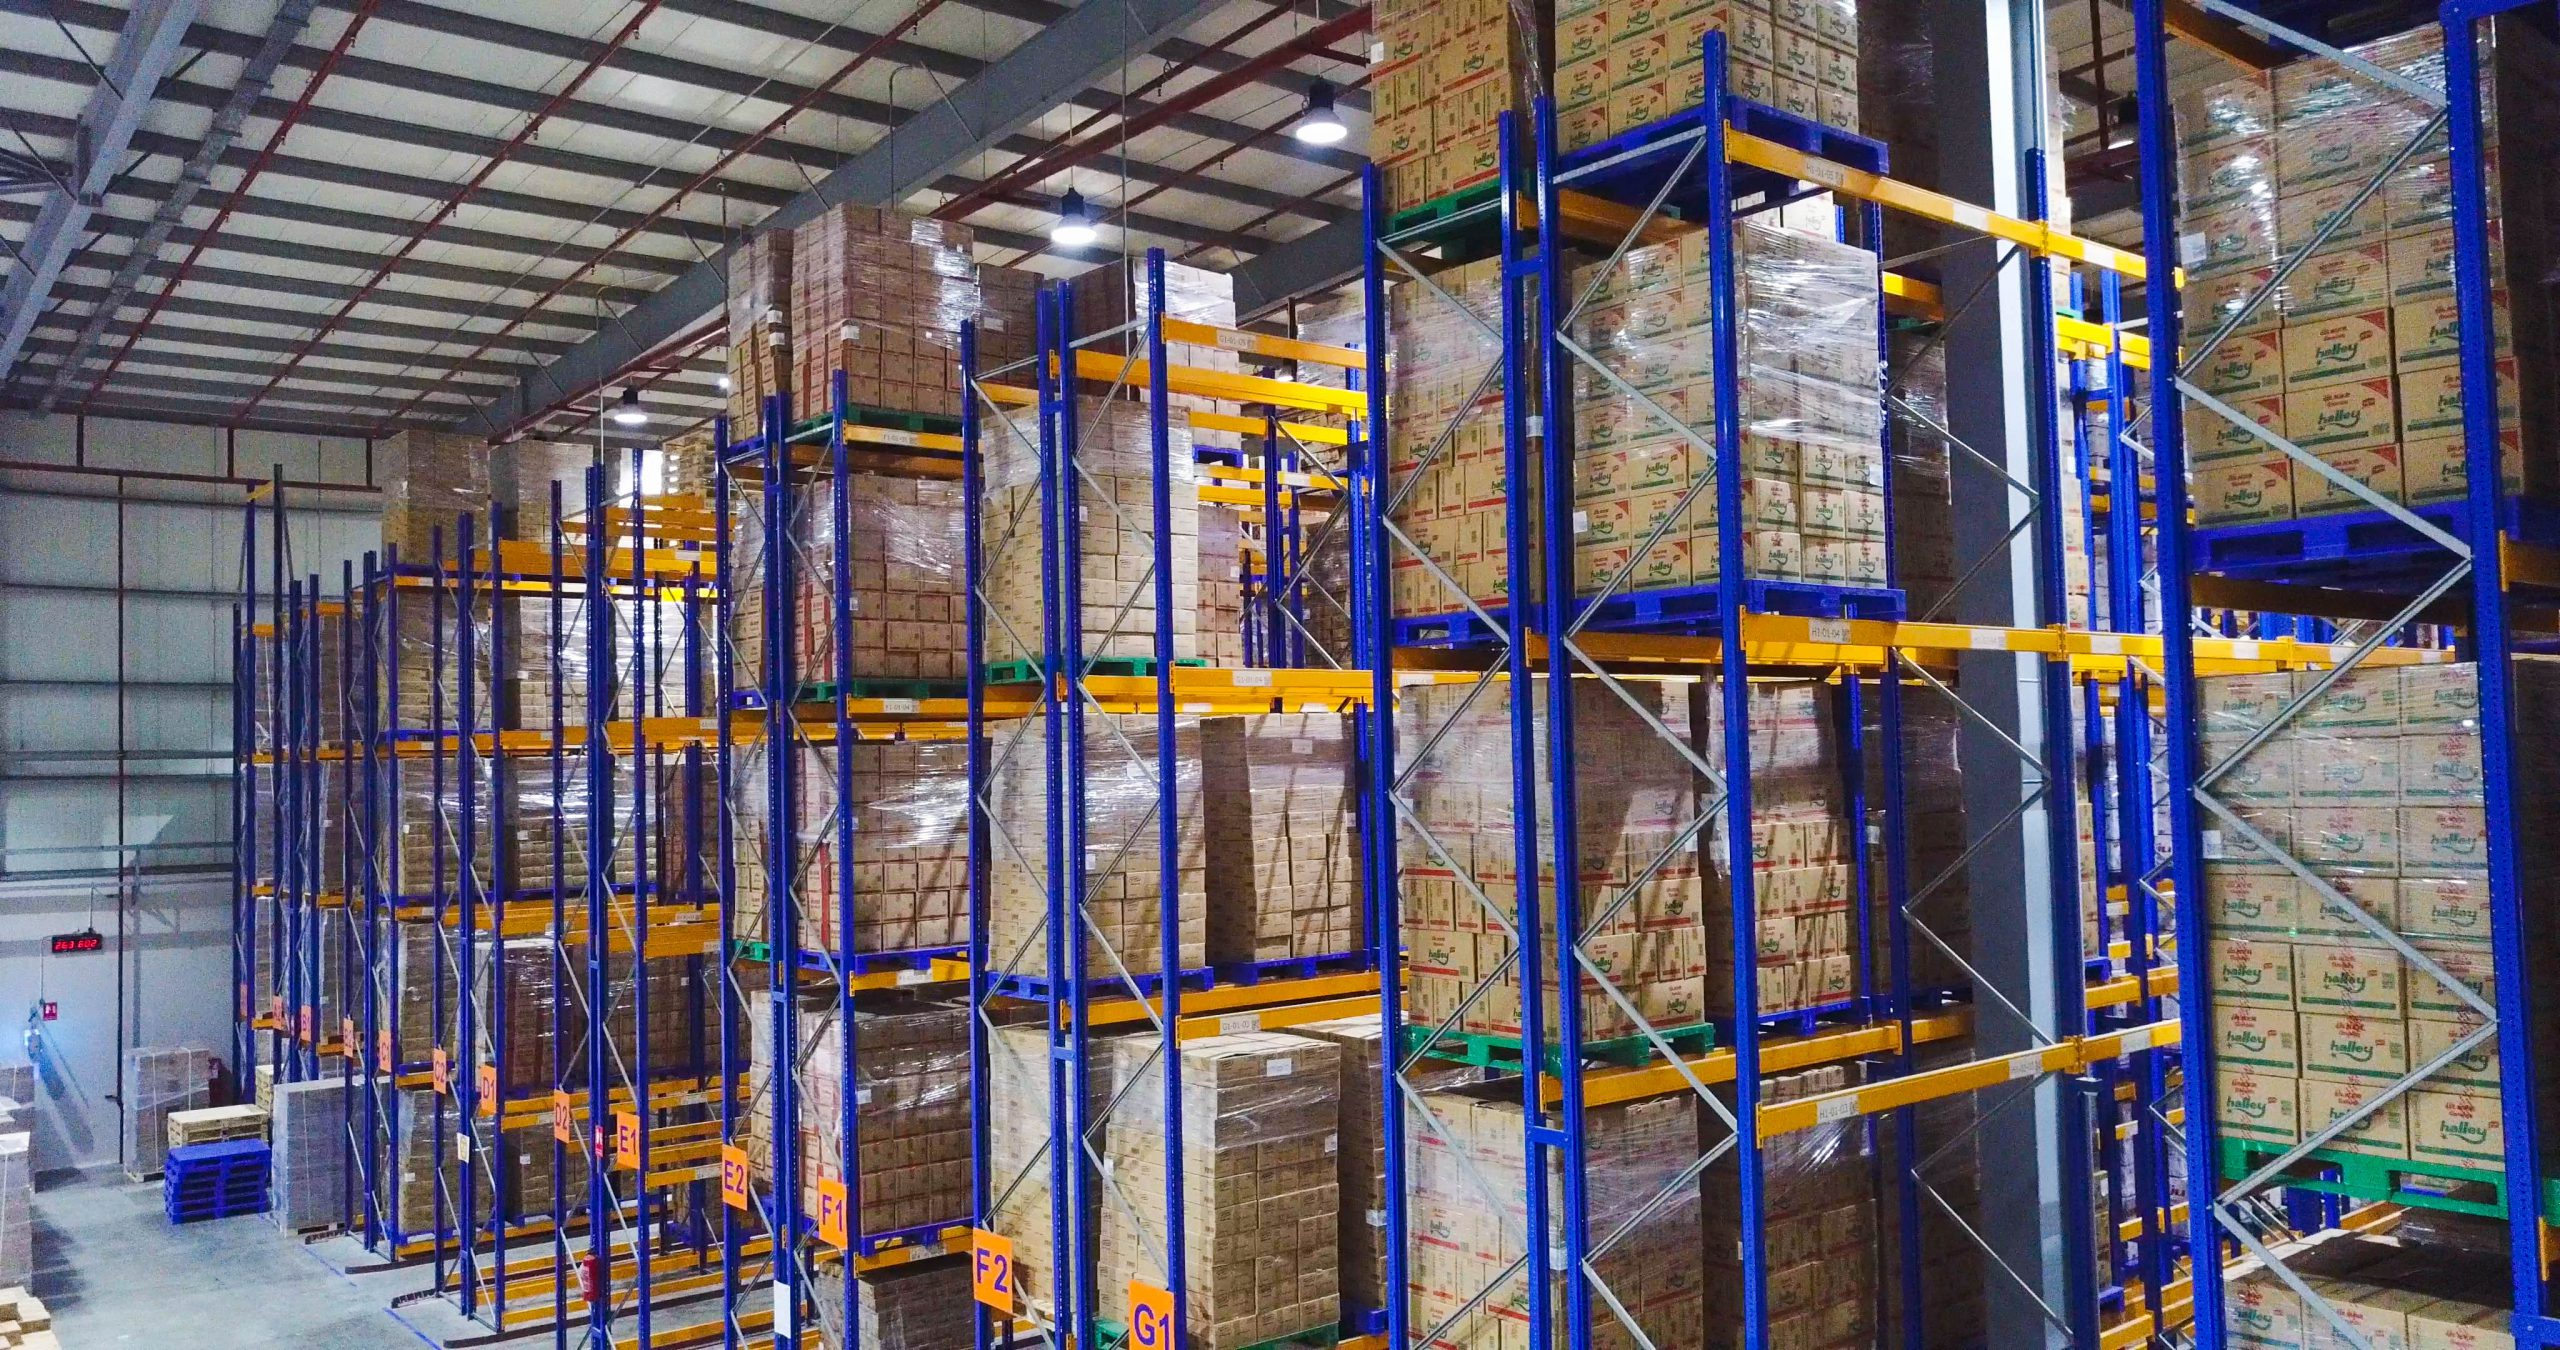 Pallet Rack Systems for Warehouse Operators